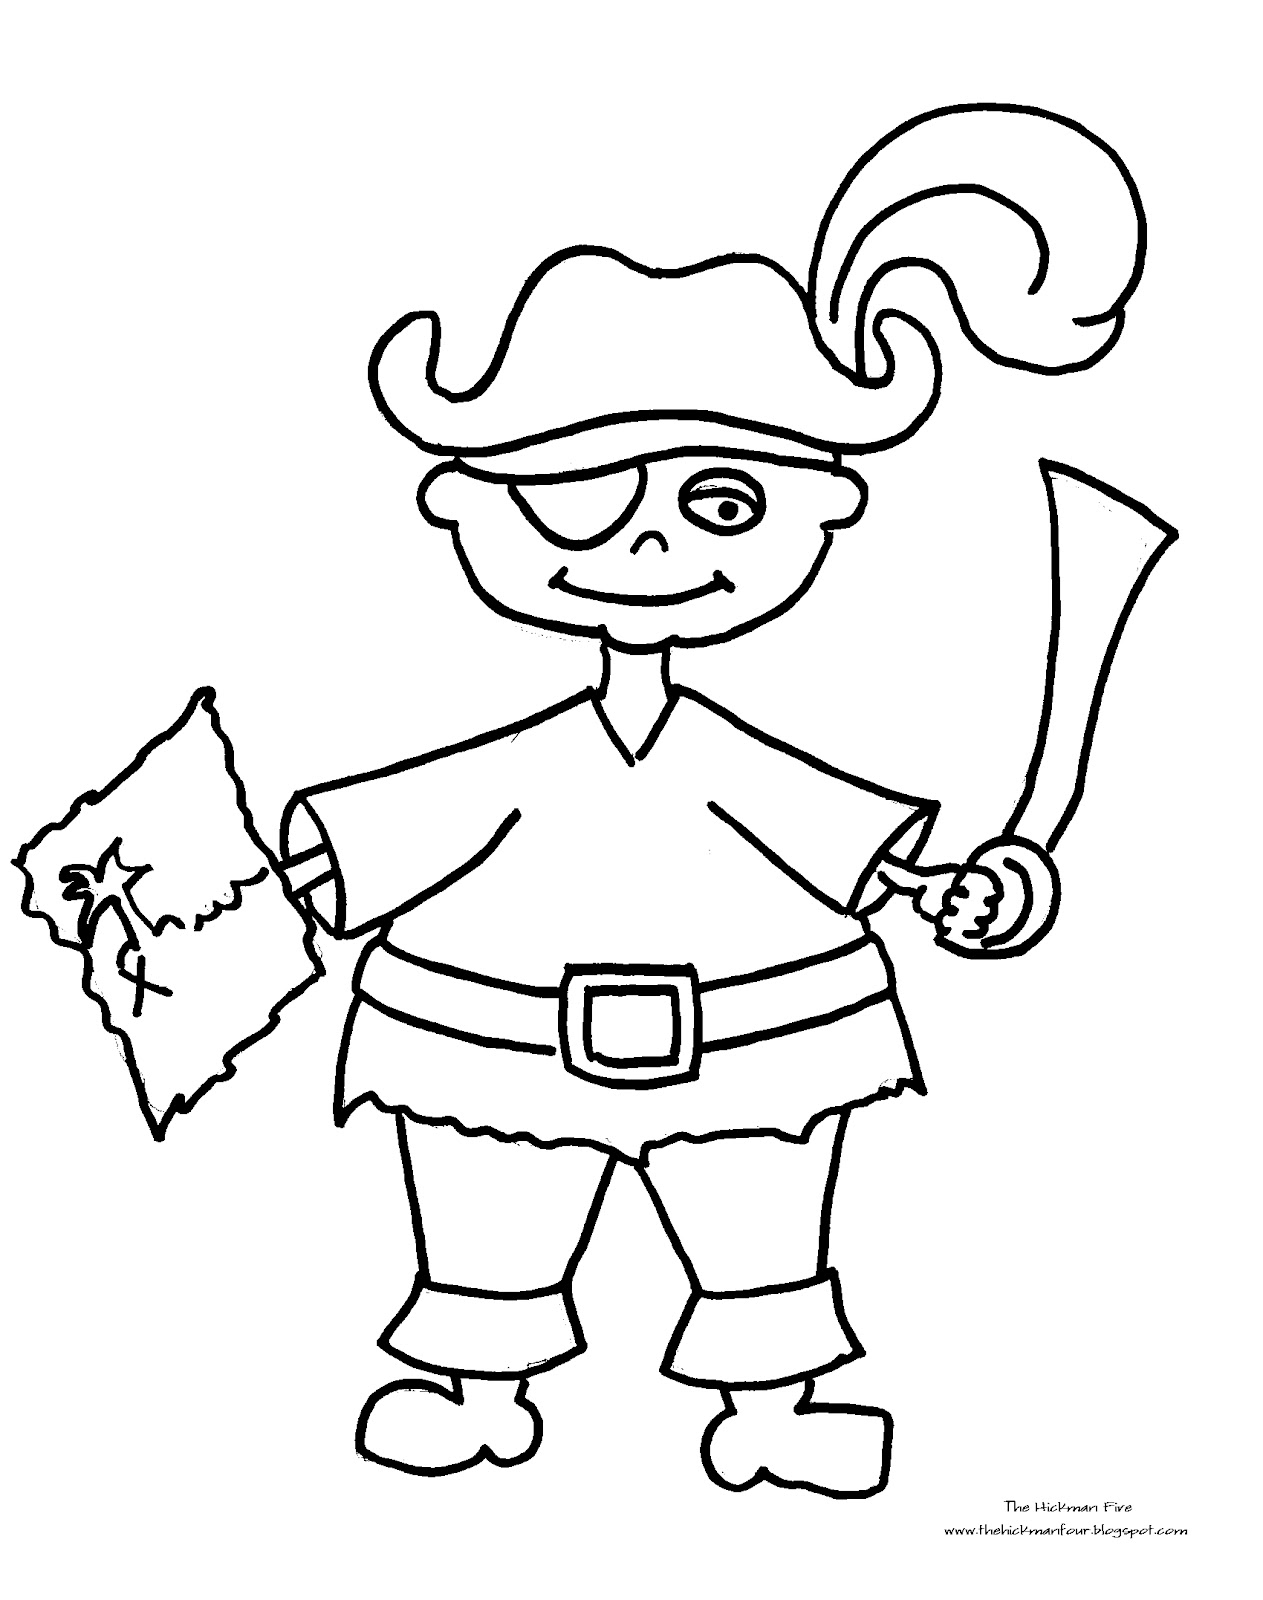 printable coloring pages for preschool - Coloring Pages Archives Kids Activities Blog